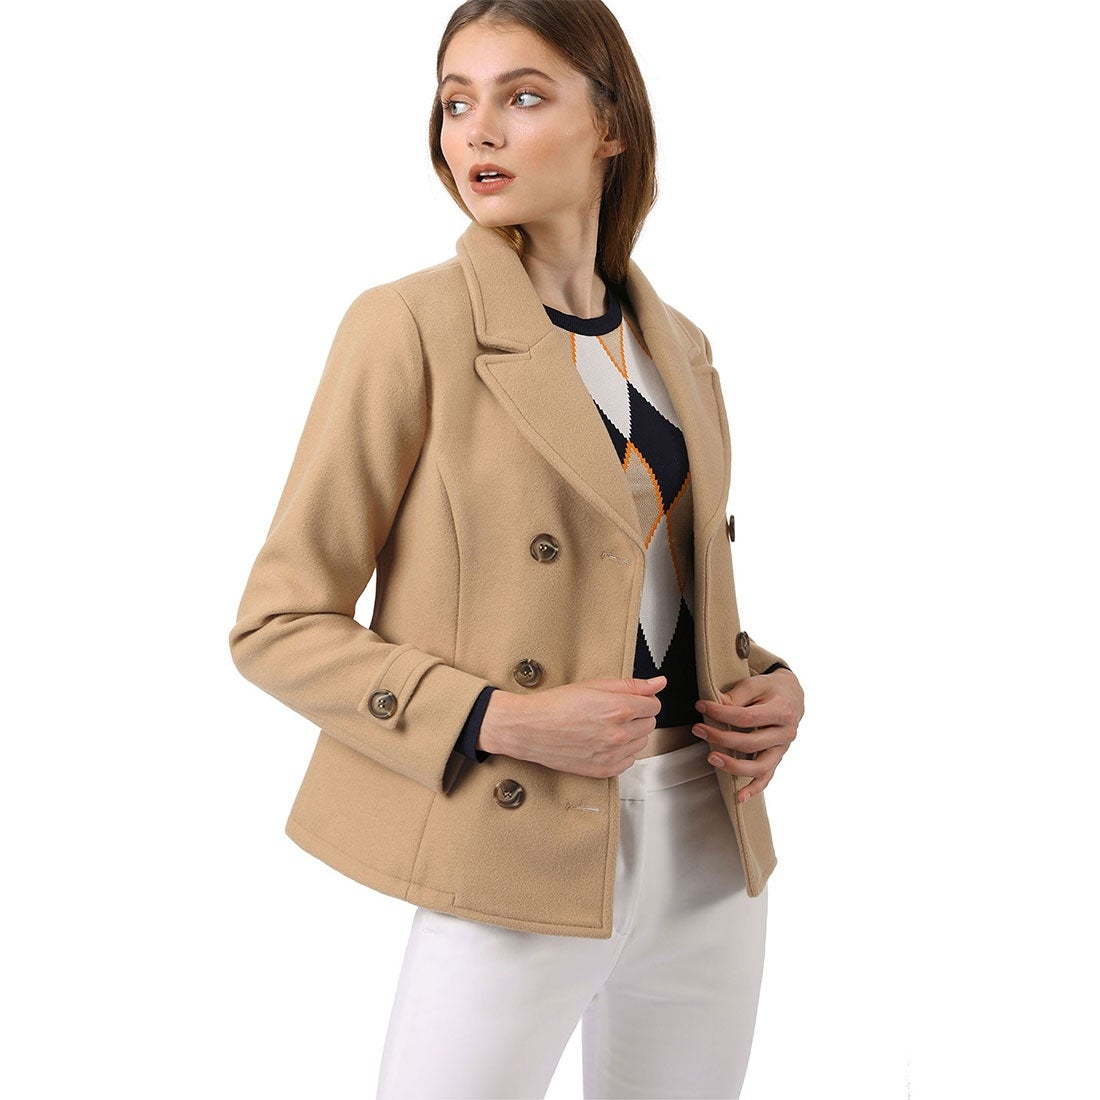 Aprsfn Womens Double-Breasted Notched Lapel Midi Wool Blend Pea Coat Jackets